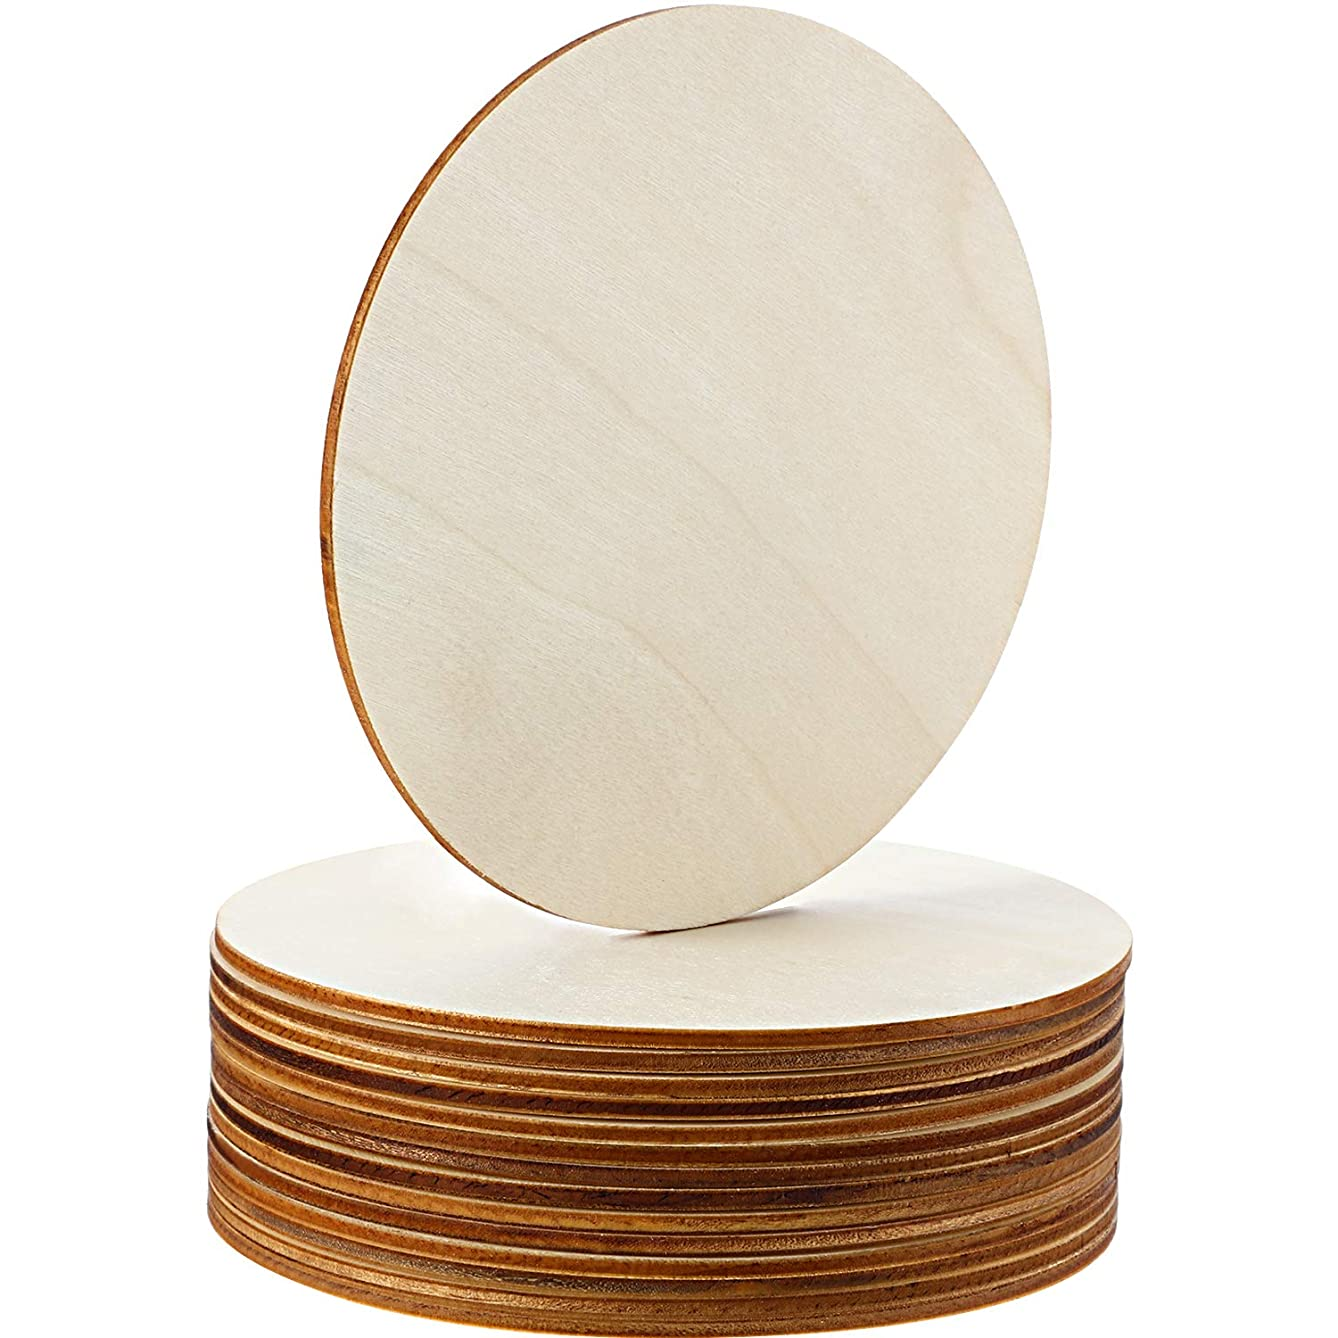 Boao Unfinished Wood Circle Round Wood Pieces Blank Round Ornaments Wooden Cutouts for DIY Craft Project, Decoration, Laser Engraving Carving, 1/8 Inch Thickness (5 Inch Diameter, 15 Pieces)